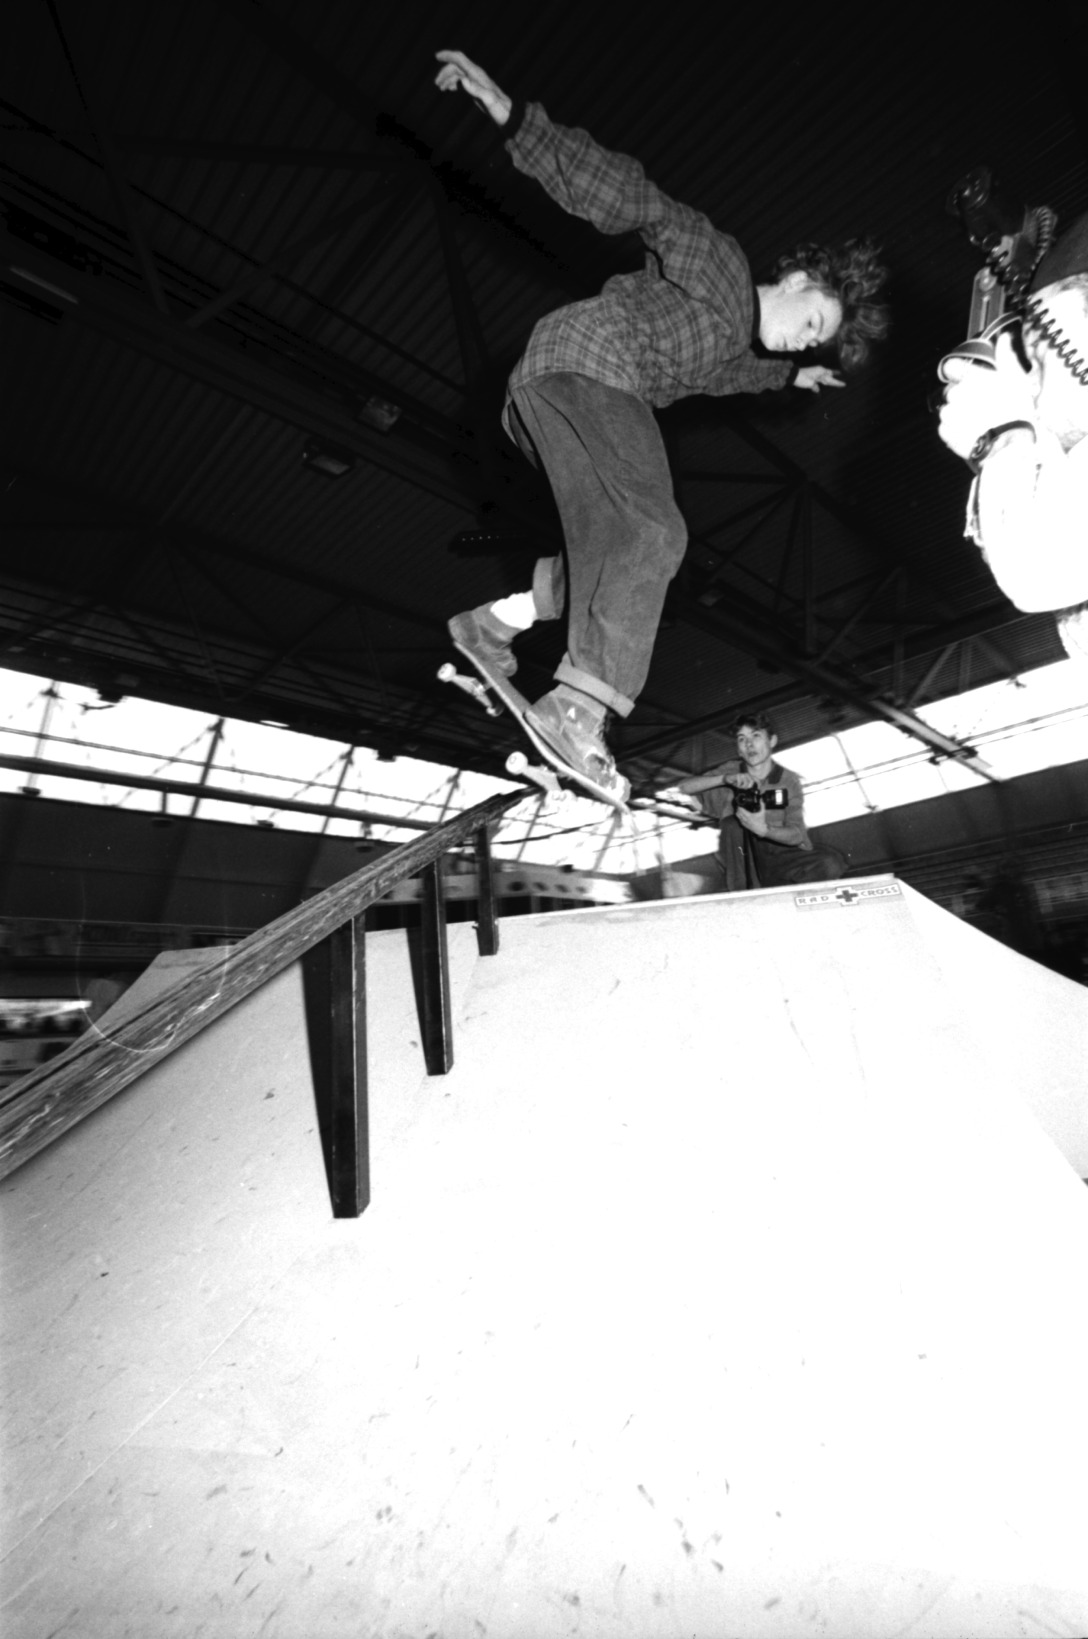 alex-moul-backside-lipslide-eindhoven-skate-comp-holland-1991-photo-kevin-banks-speedway-skateboarding-magazine